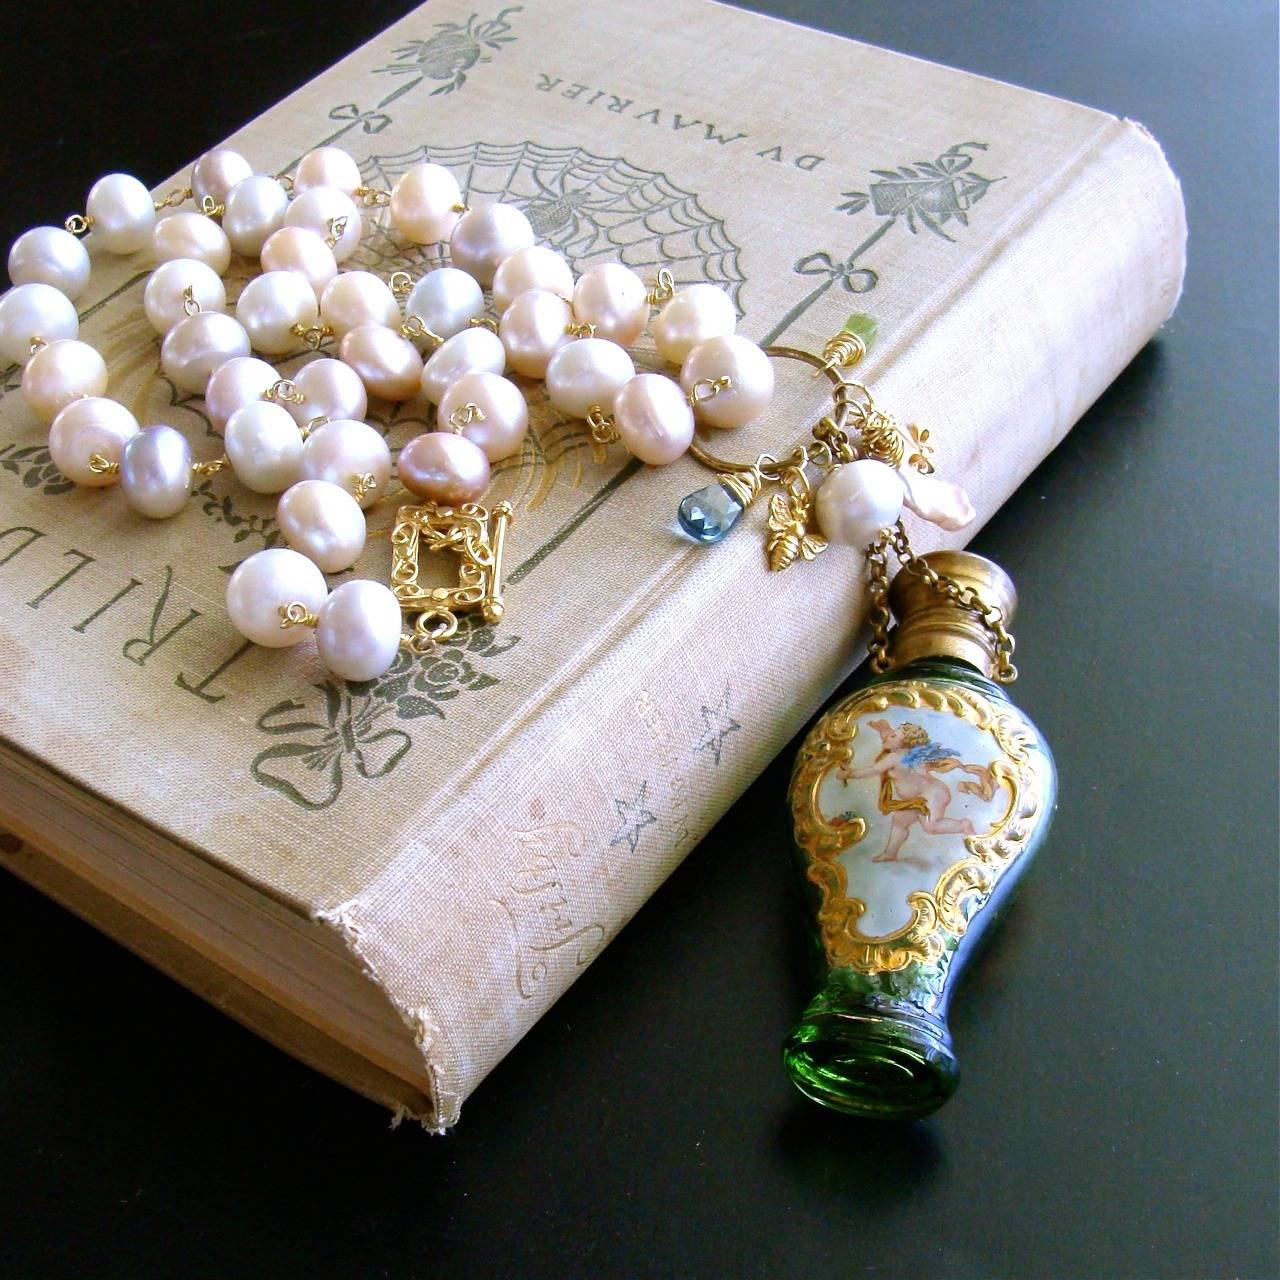 Cherub Chatelaine Scent Bottle Pink Baroque Pearls Necklace 4